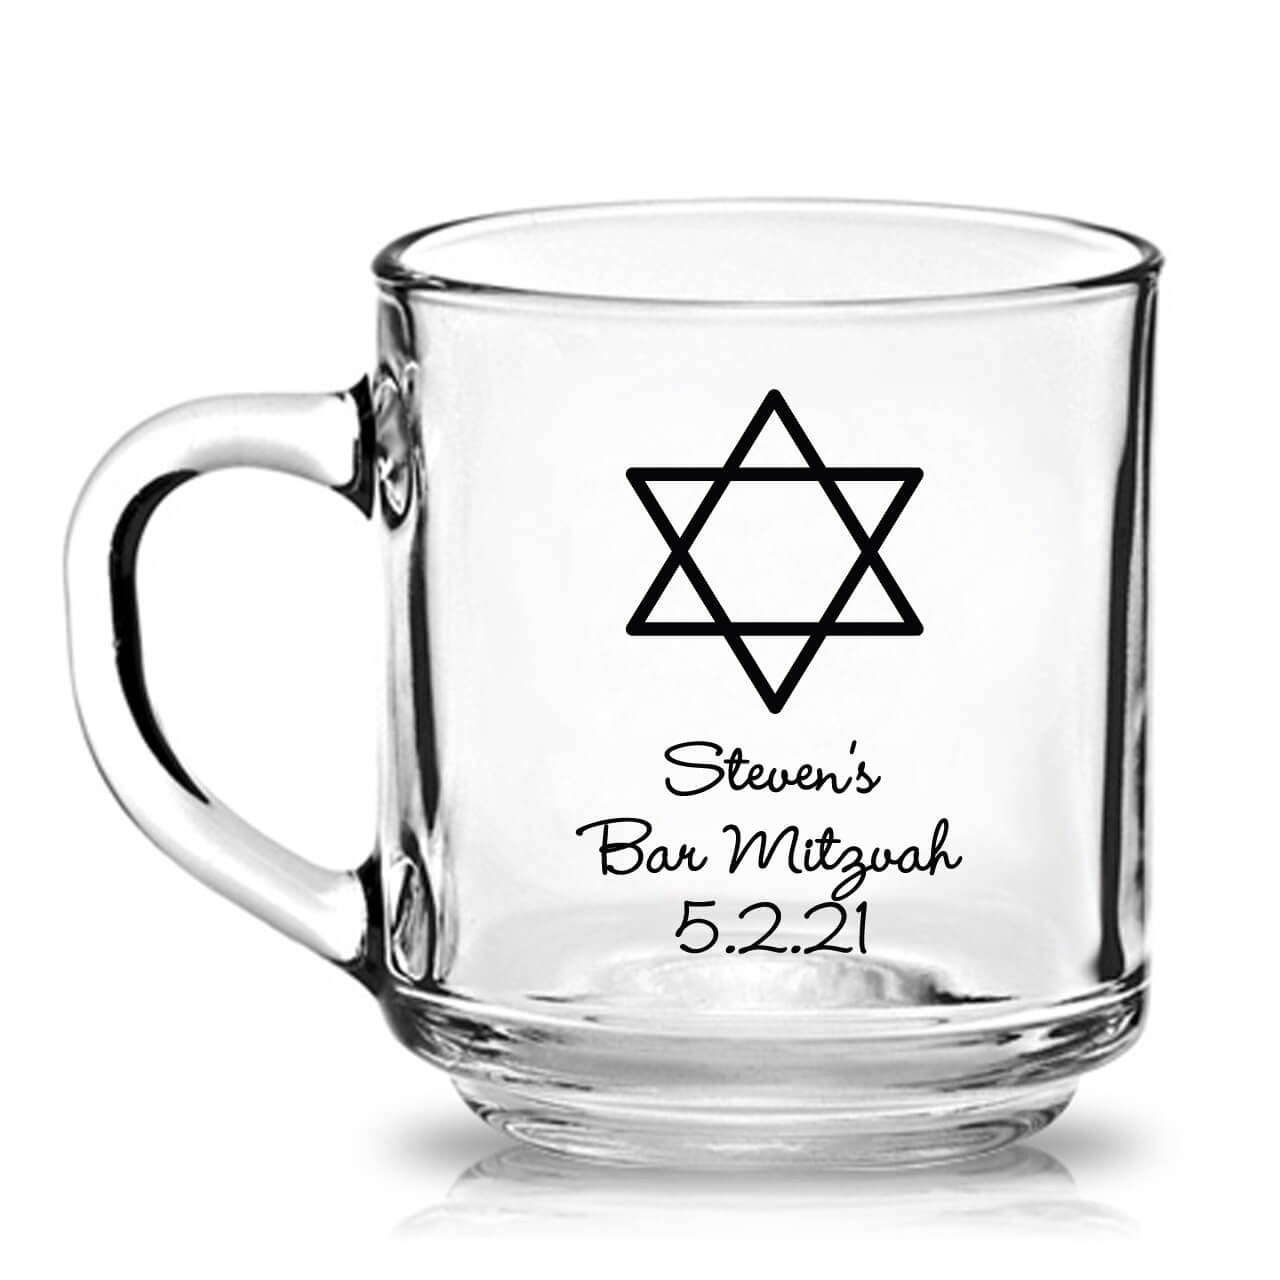 Mitzvah Clear Favors Bar Oz Glass Personalized 10 Mug SqUzMjLVpG